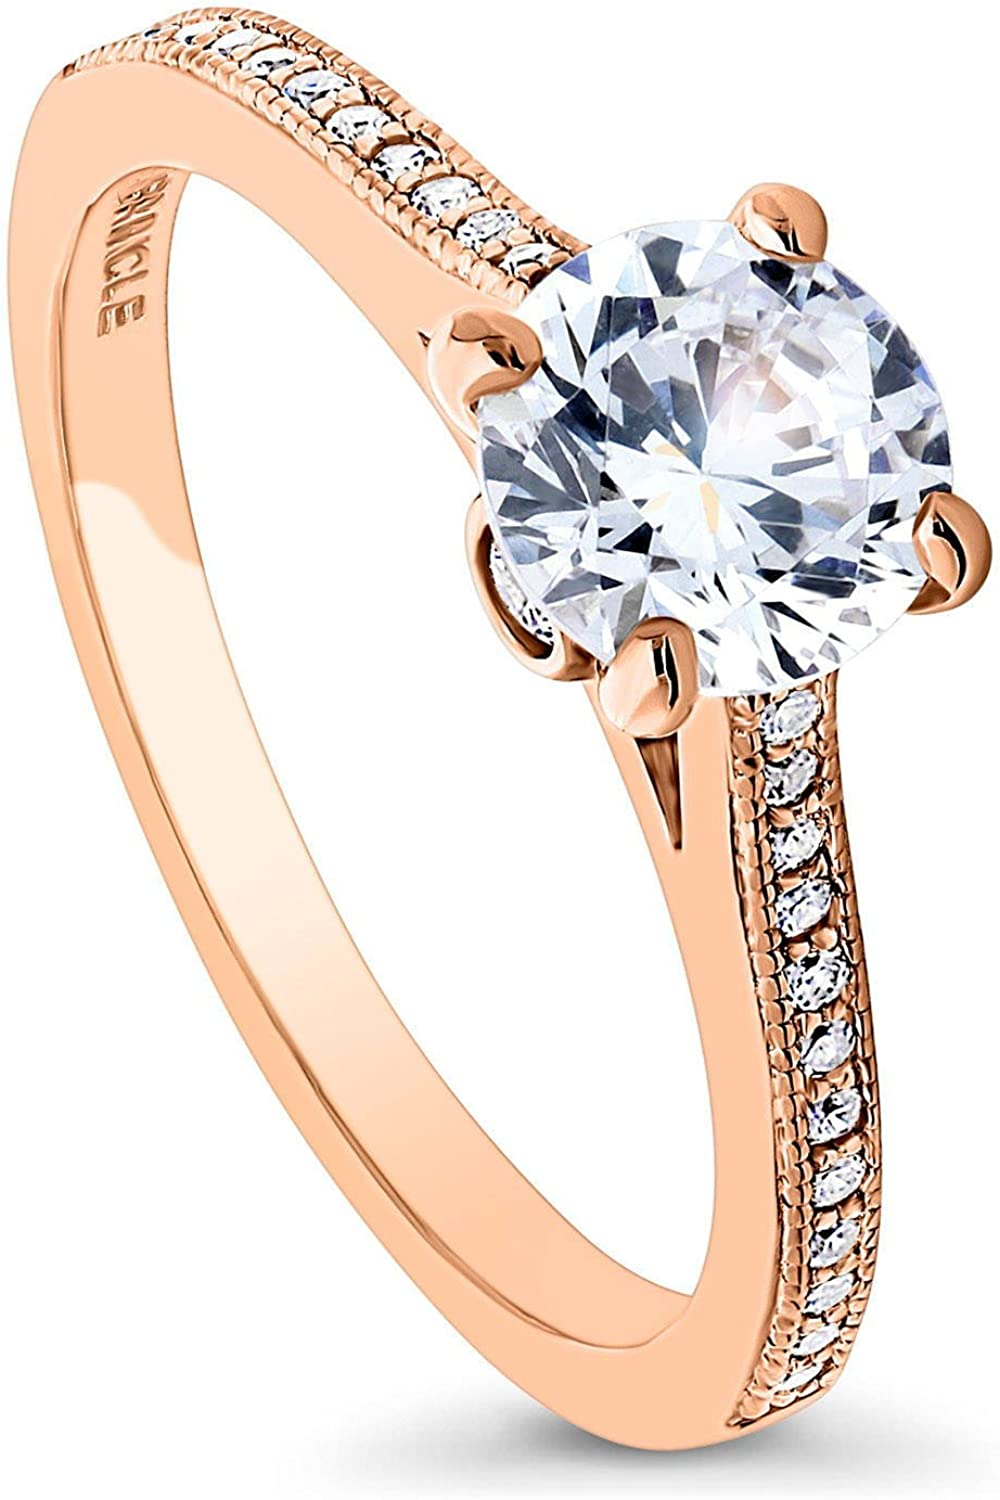 BERRICLE Rose Gold Plated Sterling Silver Round Cubic Zirconia CZ Solitaire Promise Engagement Ring 1.18 CTW